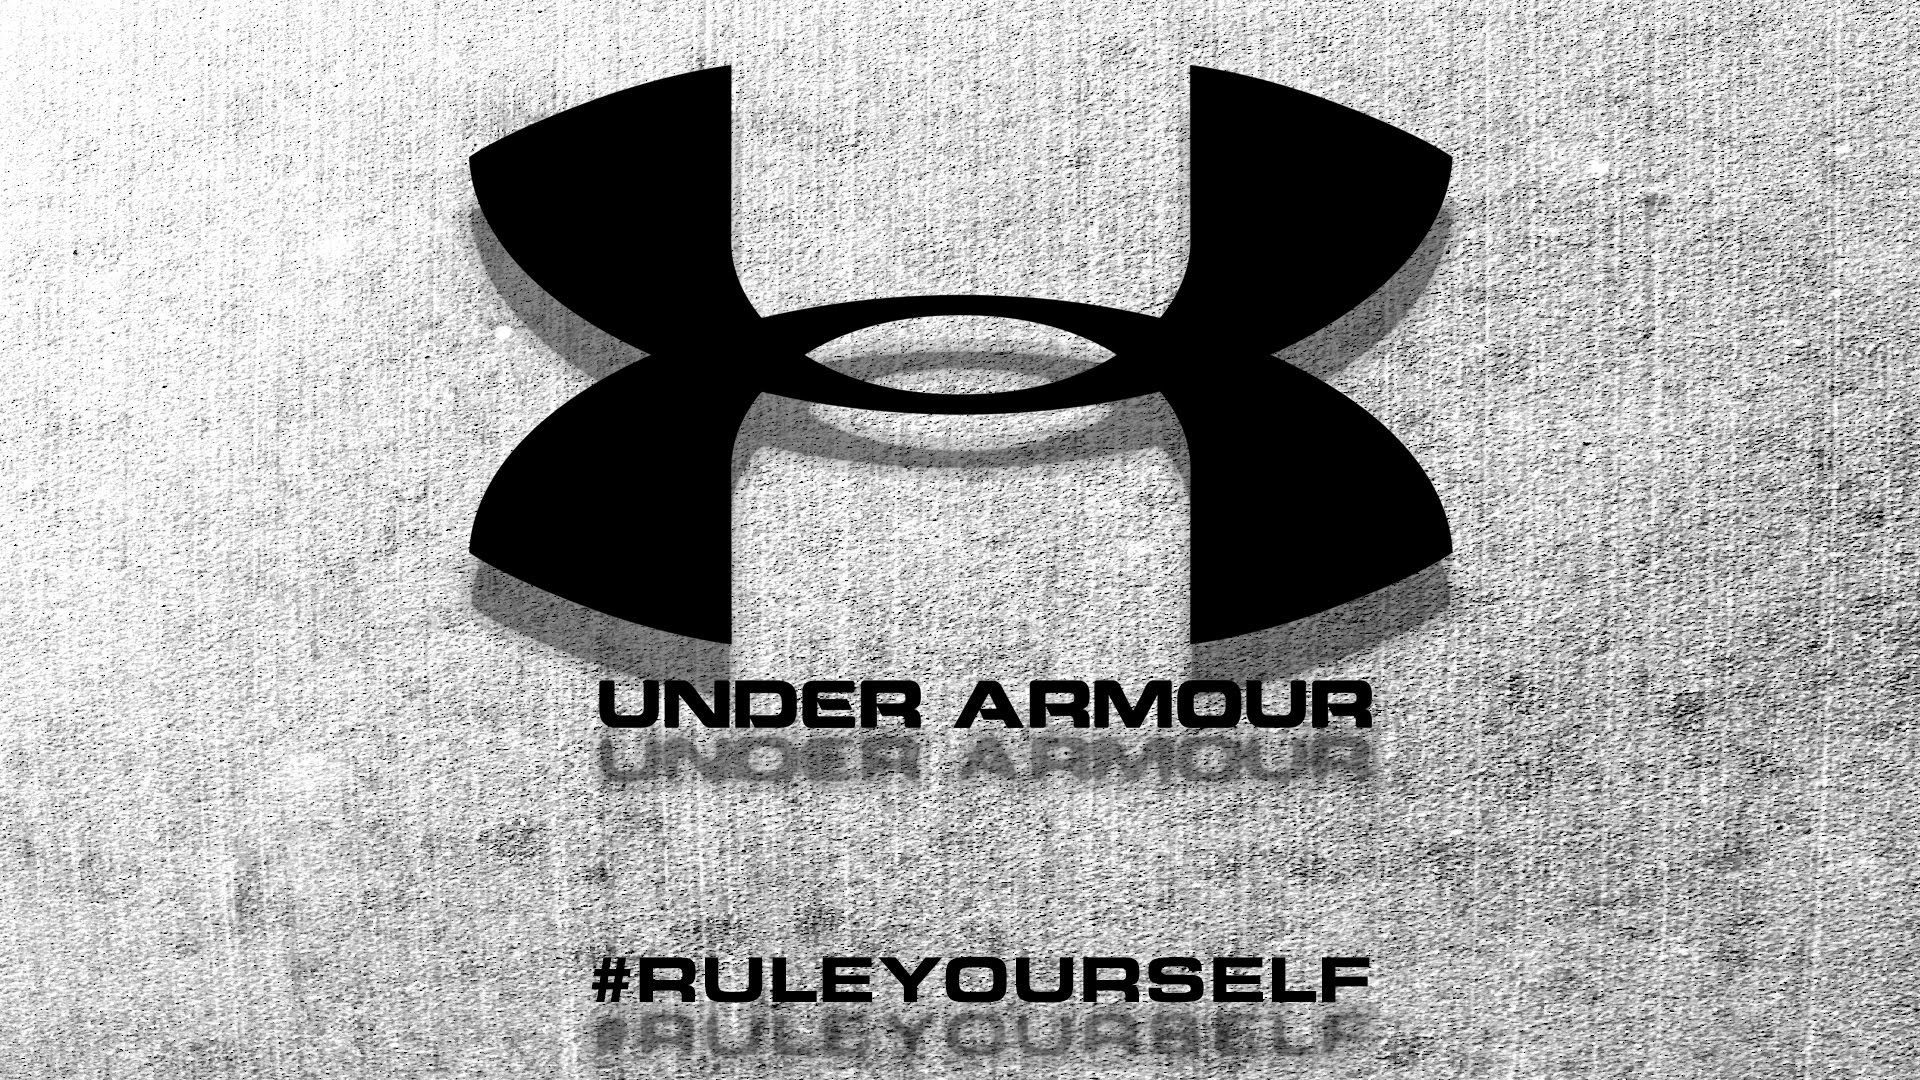 UNDER ARMOUR:RULE YOURSELF